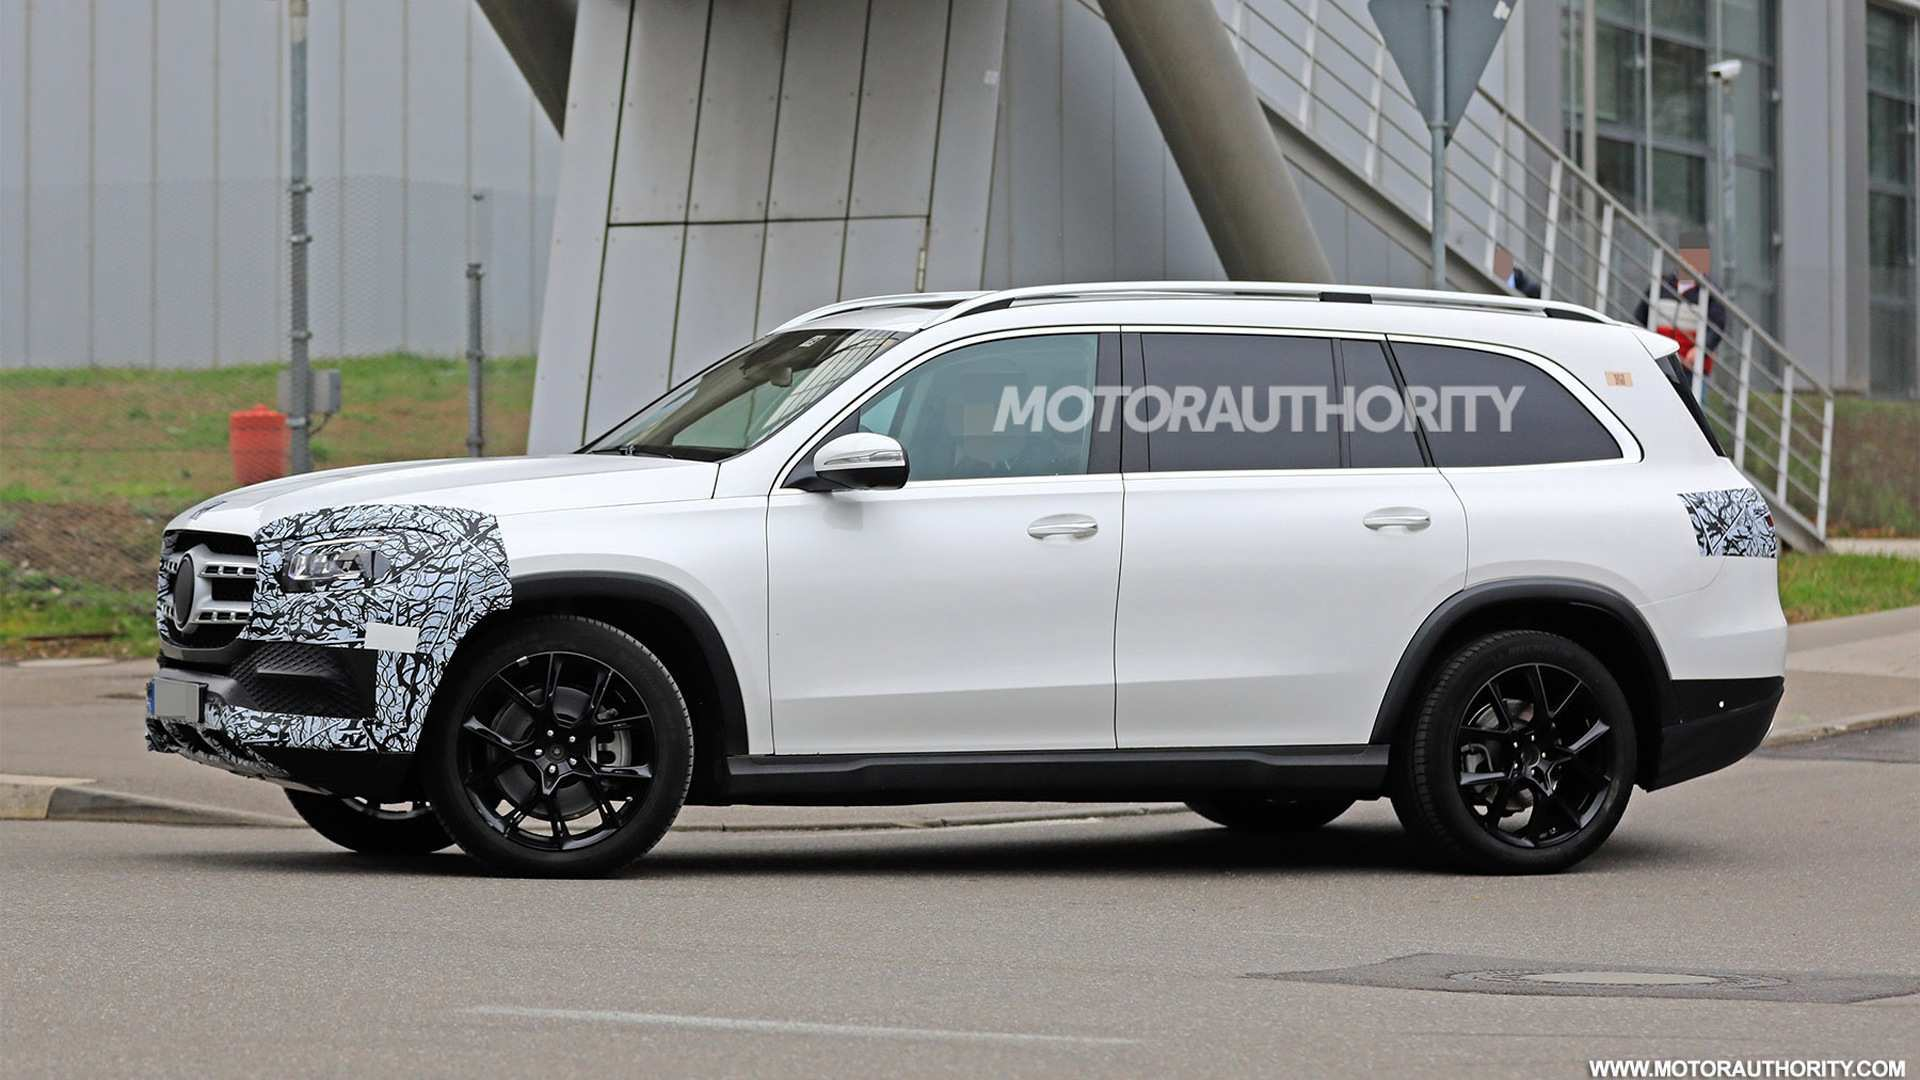 68 The Best 2020 Mercedes GLS Performance And New Engine